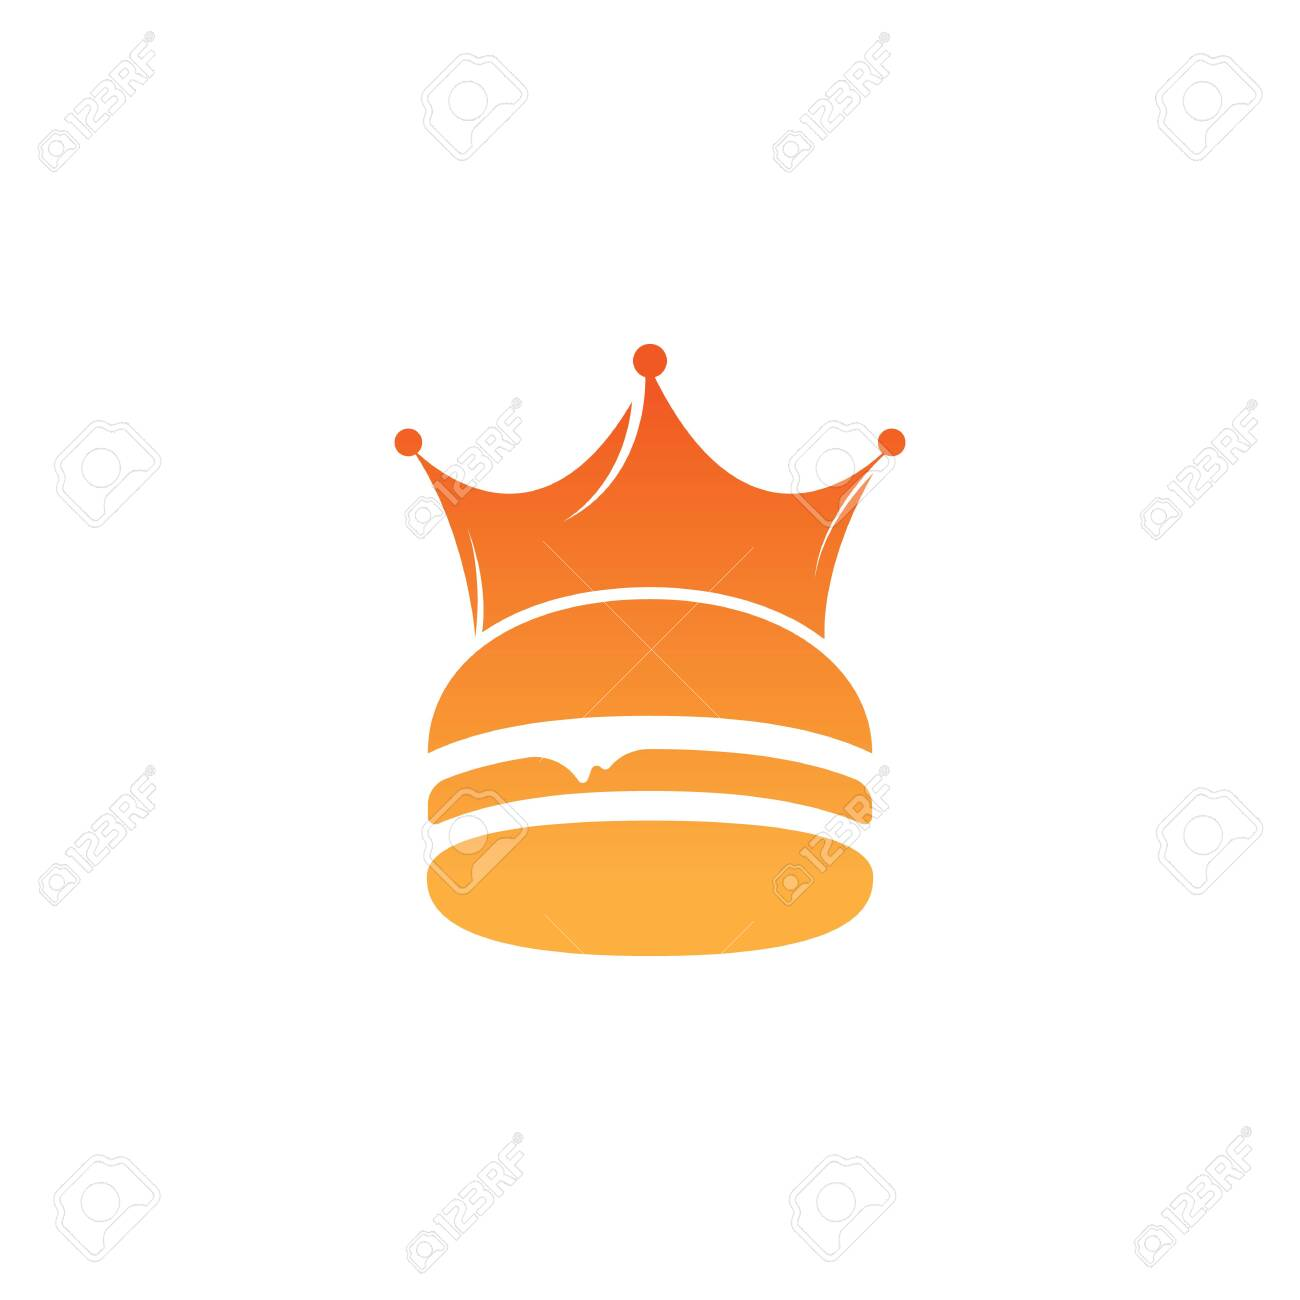 Burger King Vector Logo Design Burger With Crown Icon Logo Concept Royalty Free Cliparts Vectors And Stock Illustration Image 148652936